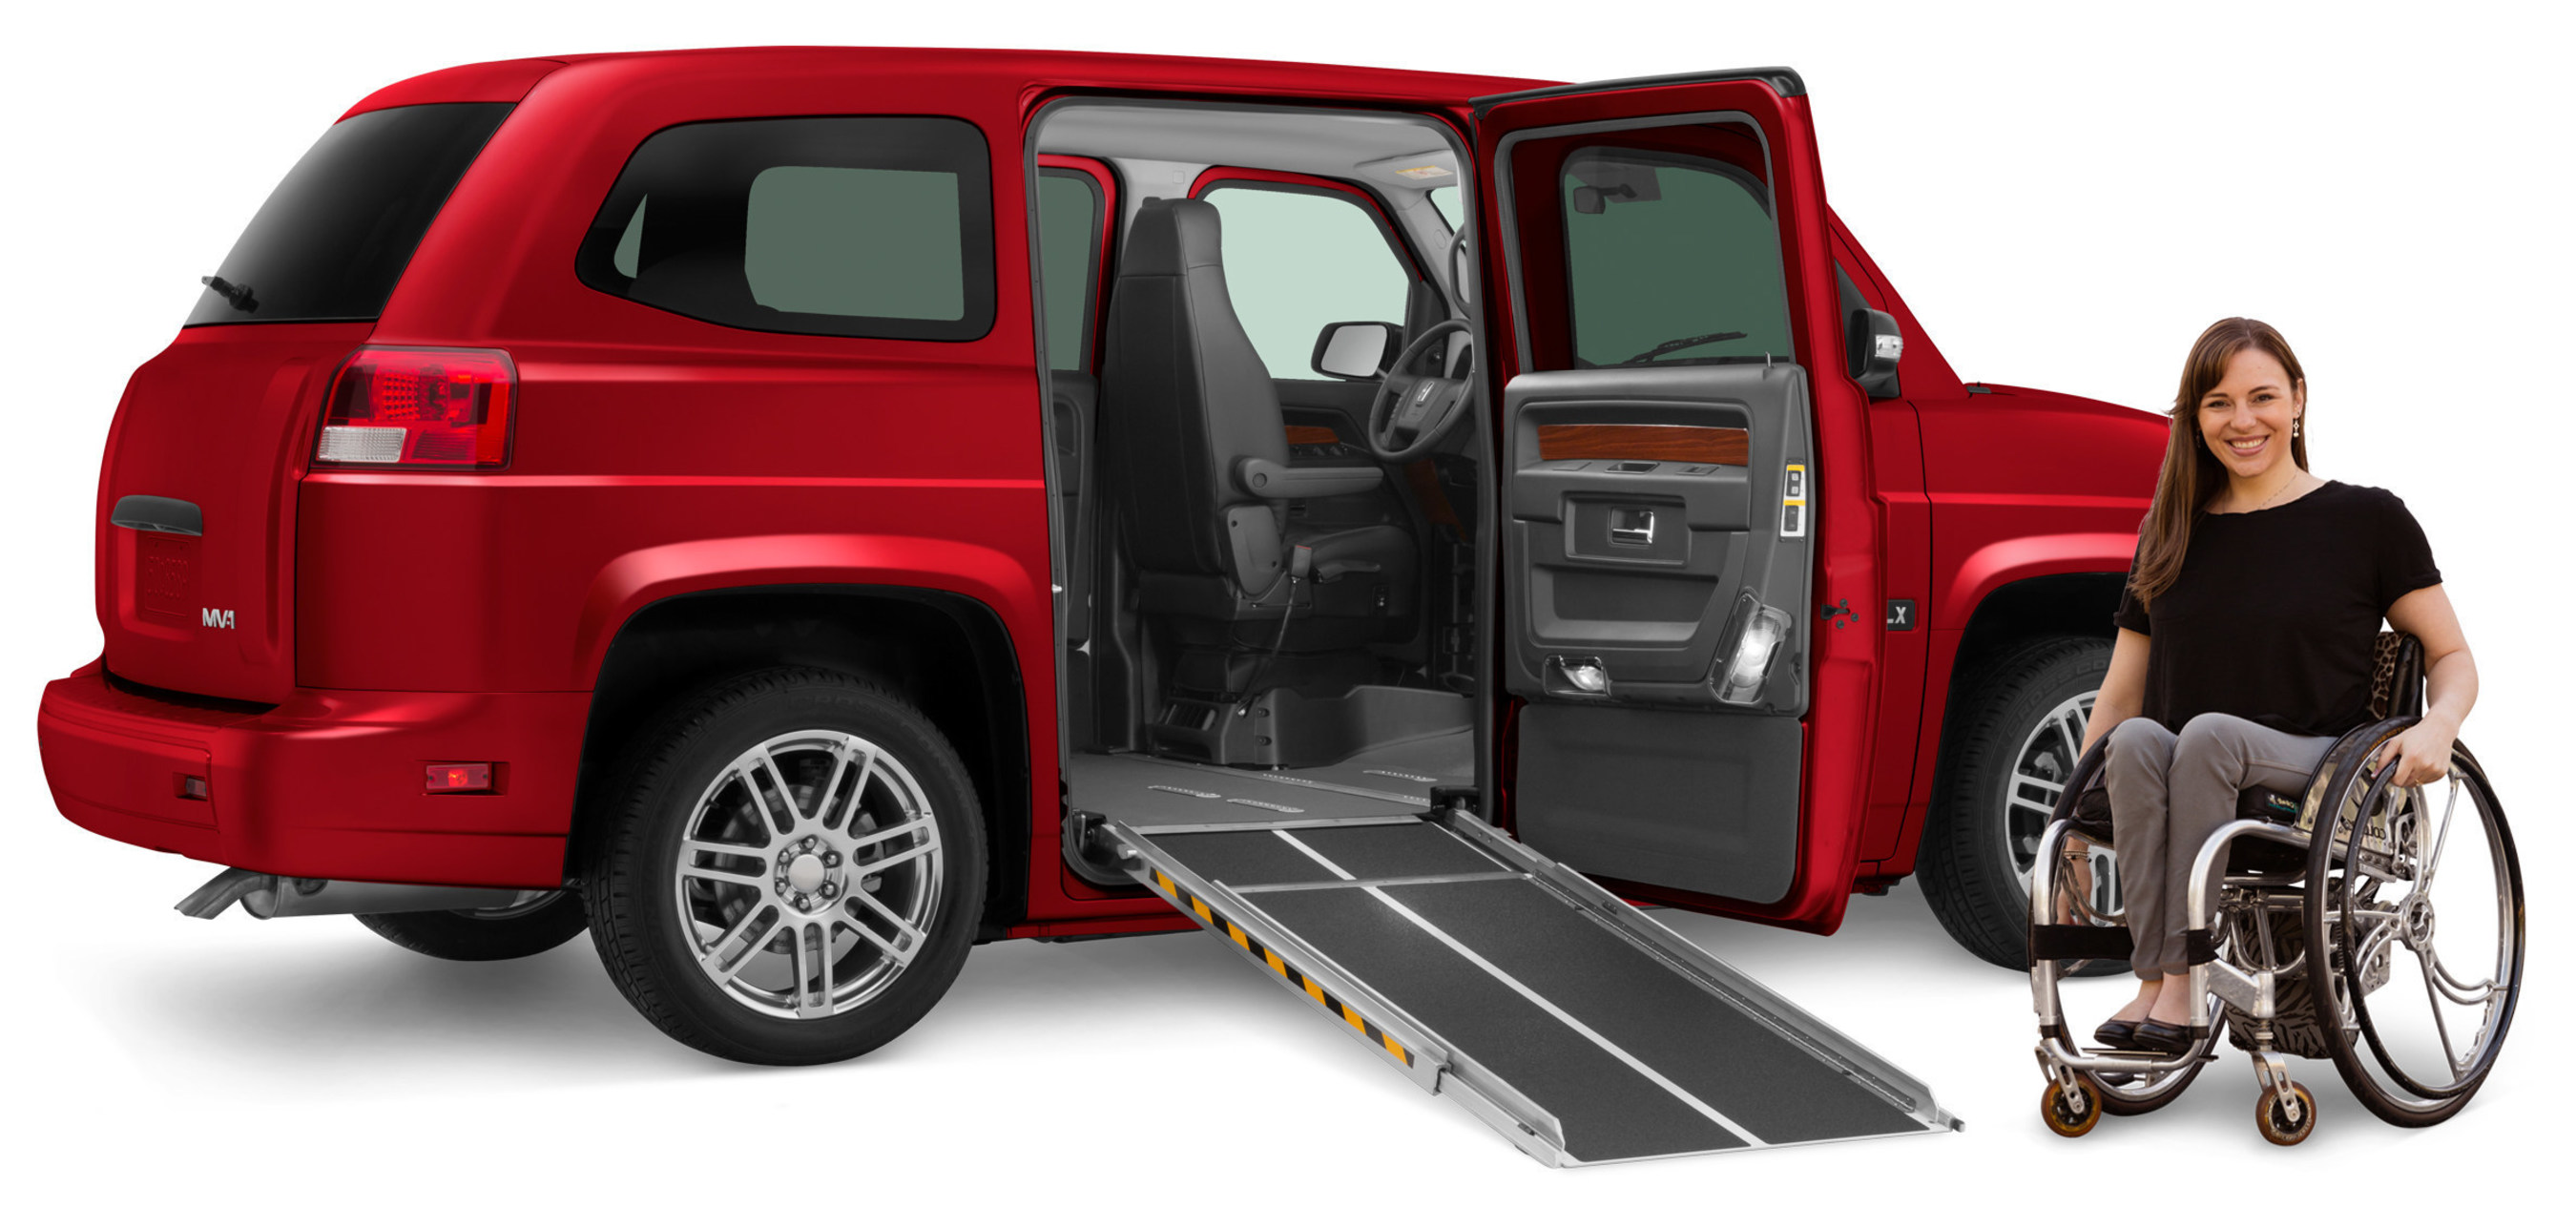 Highlighting the roster of new features on the 2016 MV-1 is a power passenger door, operated by a remote keyless fob to provide people using wheelchairs with a new level of independence. The power passenger door can be paired with MV-1's innovative side-entry power ramp and a new optional power liftgate to create a complete suite of automated functions for the wheelchair passenger or driver.